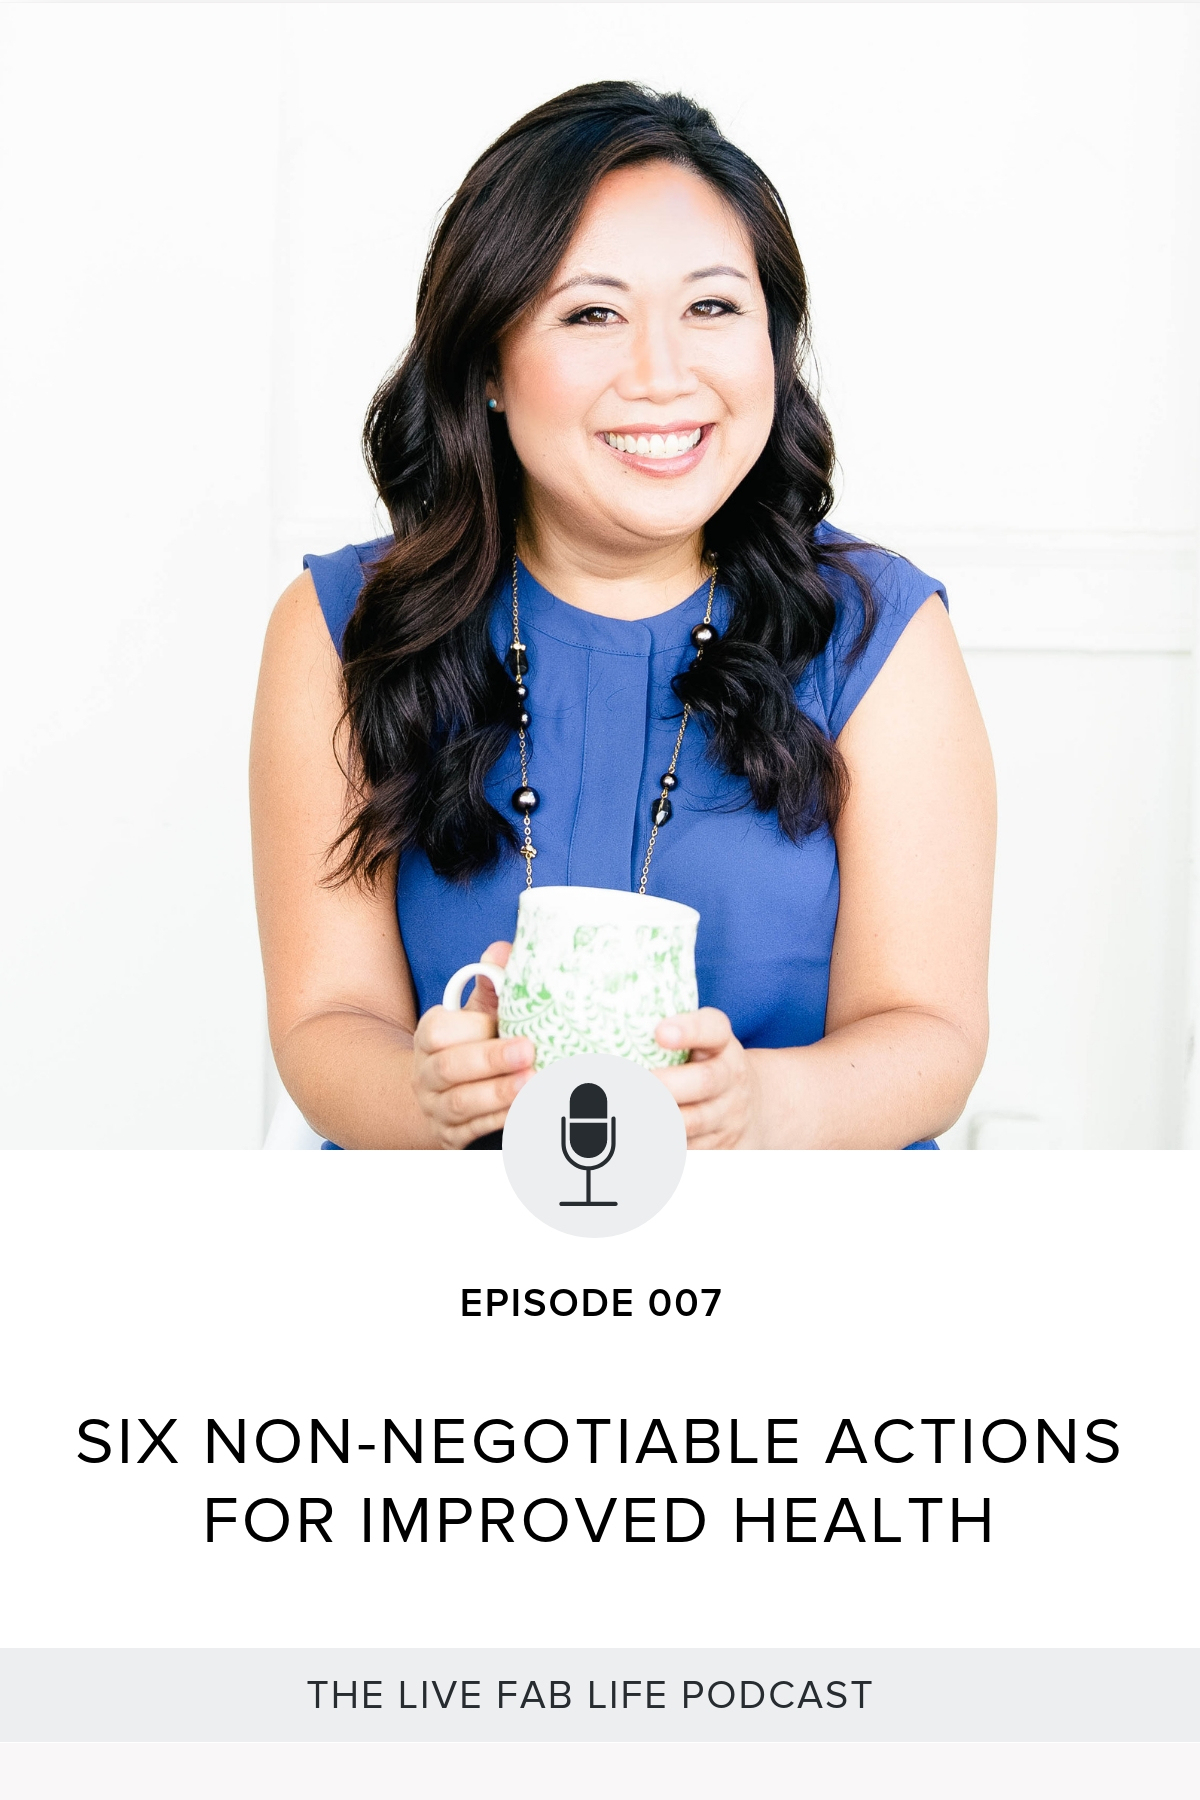 Episode 007: Six Non-Negotiable Actions for Improved Health